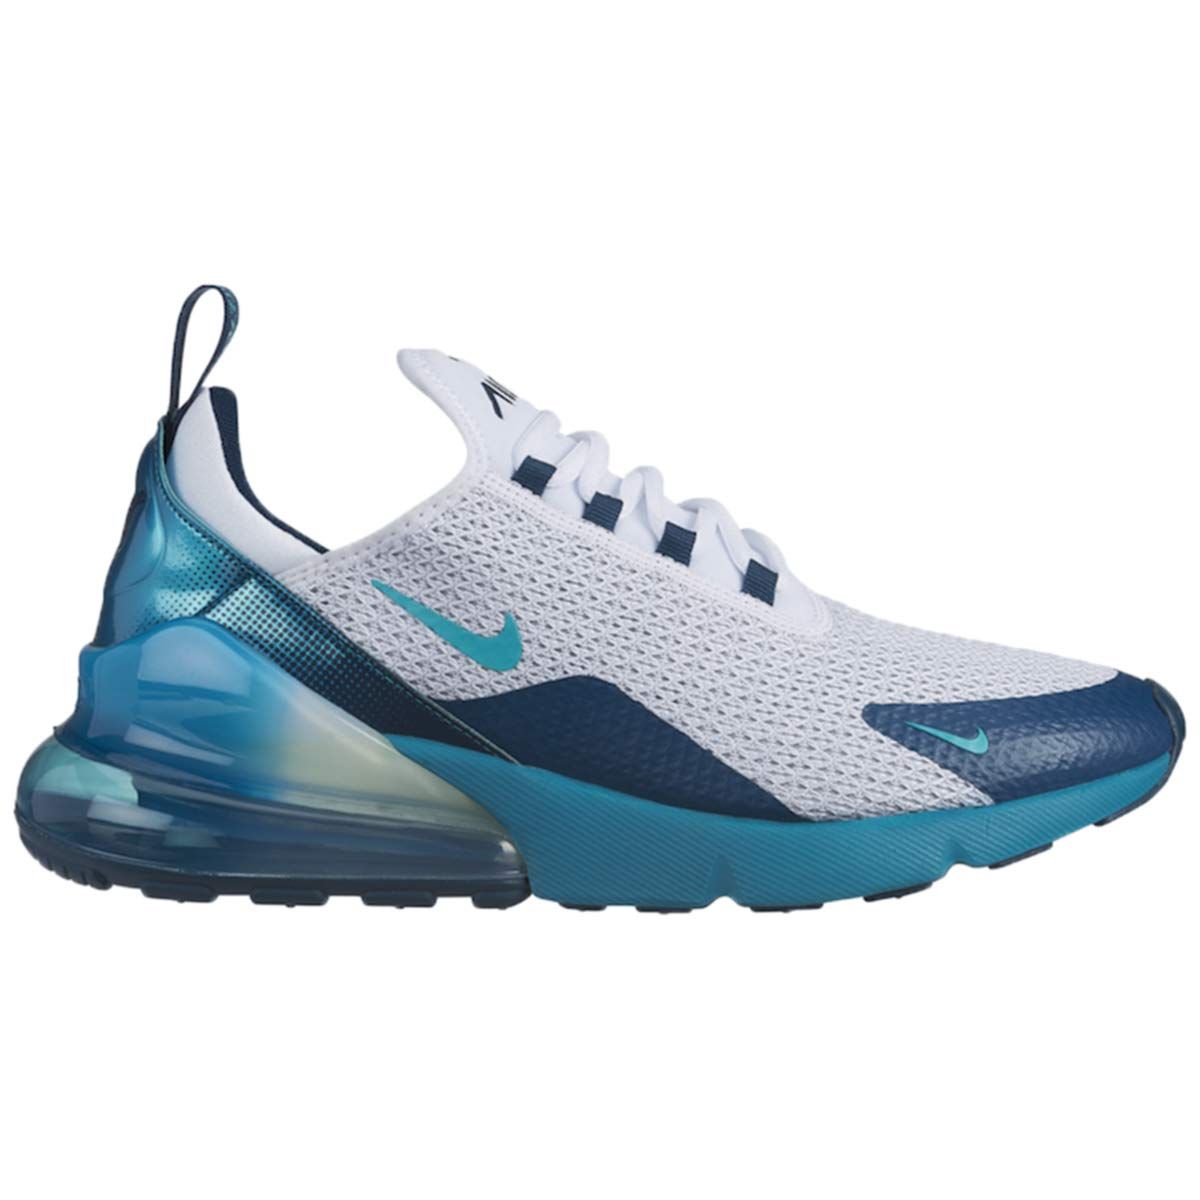 Nike Men's Air Max 270 Mesh Running Shoes (11.5, 白い/Spirit Teal-Nightshade)